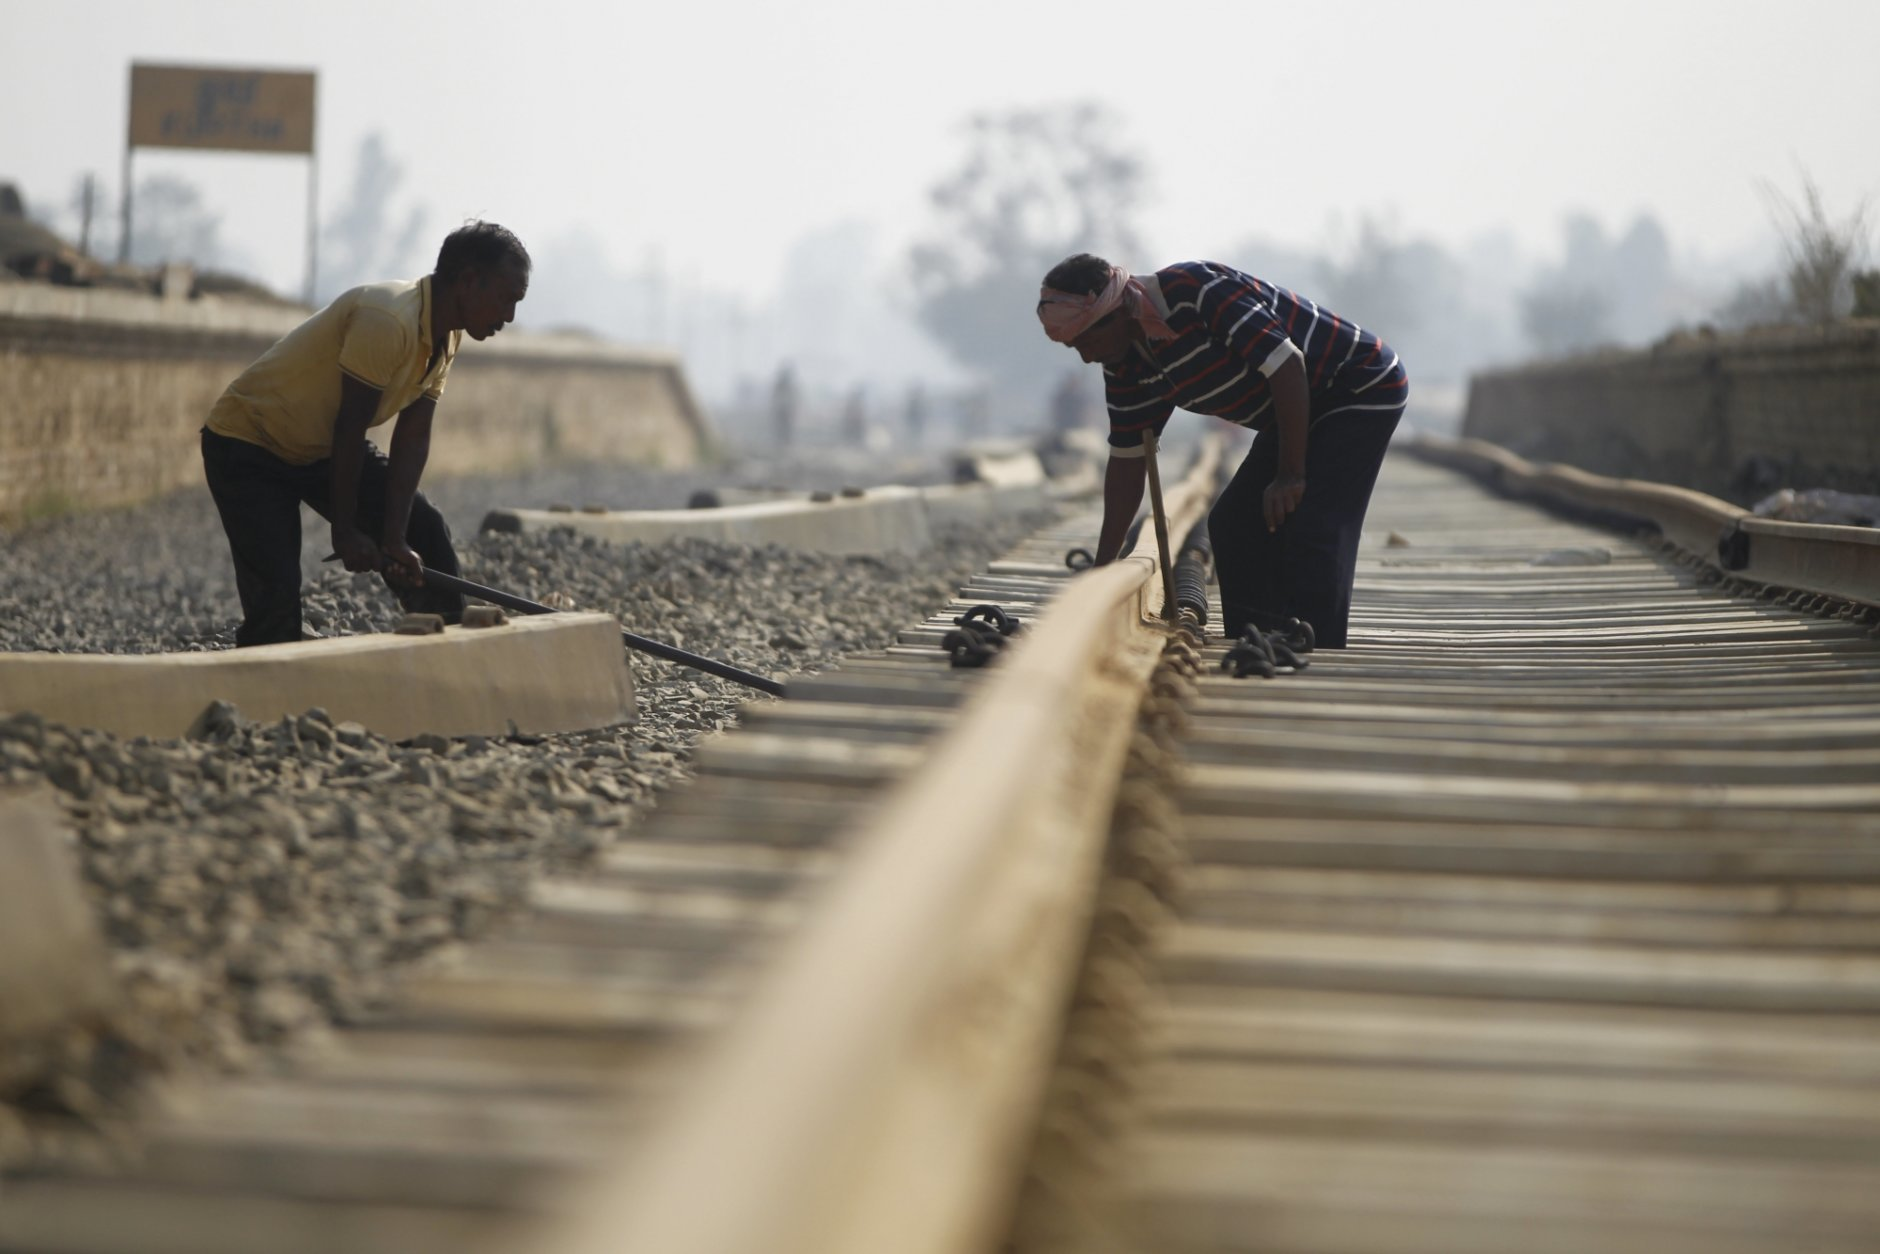 In this Nov. 29, 2018 photo, Nepalese construction laborers work at the terminal train station at Kurtha near Janakpur, Nepal from where a new rail line connects to Jay Nagar in the Indian state of Bihar. The competition between two Asian giants, India and China, for influence over tiny Nepal is yielding a bonanza in the form of the Himalayan mountain nation's first modern railway, and possibly more to come. (AP Photo/Niranjan Shrestha)